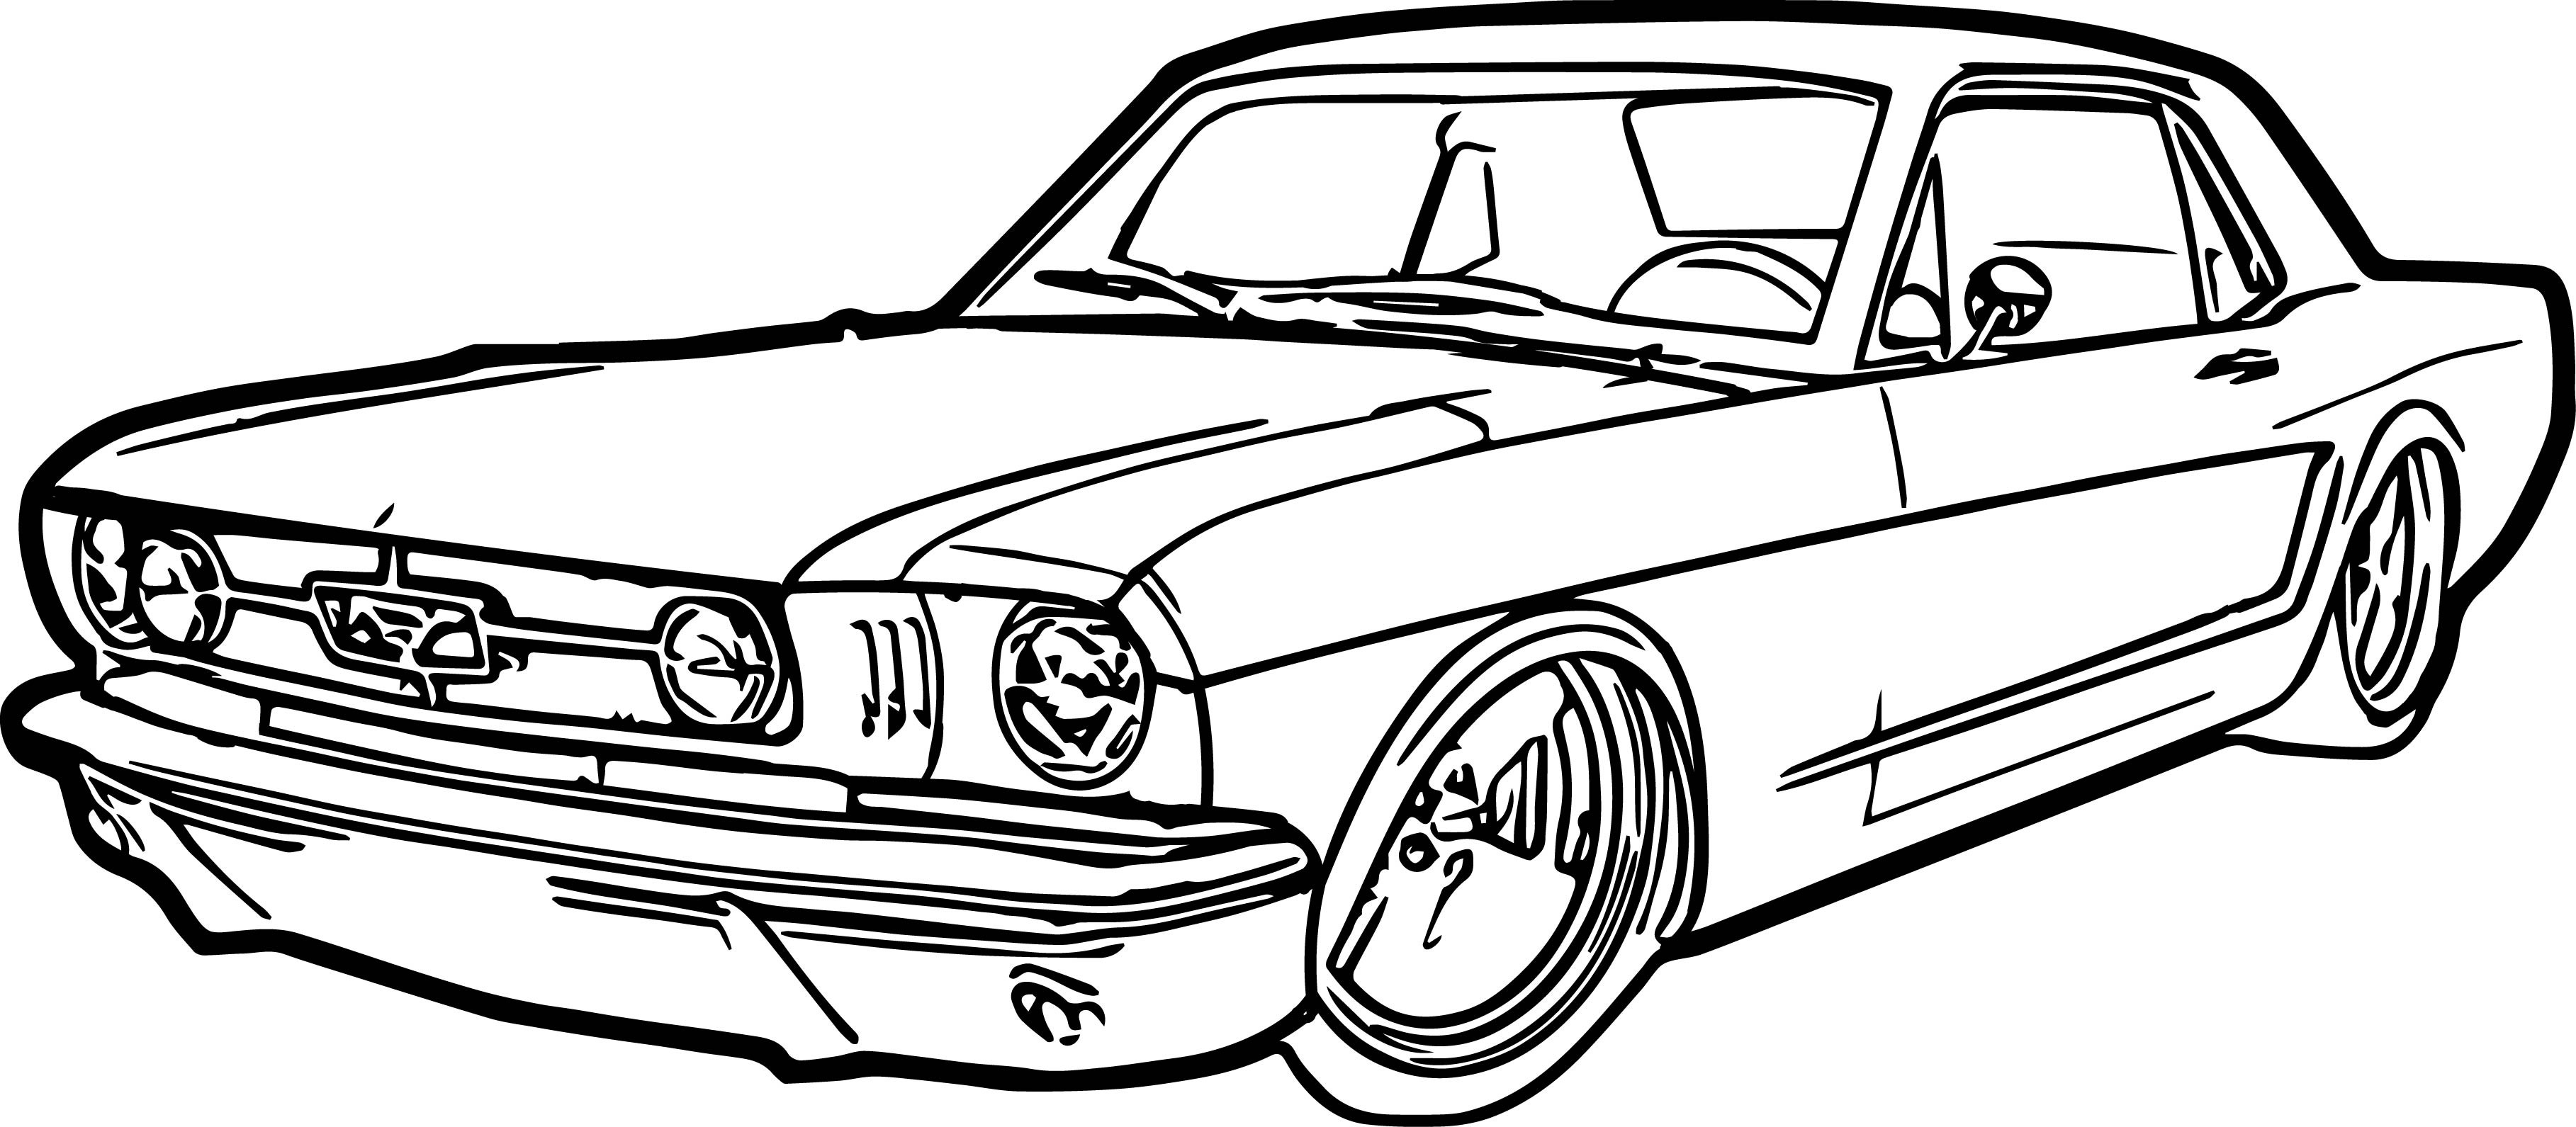 exotic car coloring pages - luxury car drawing at free for personal